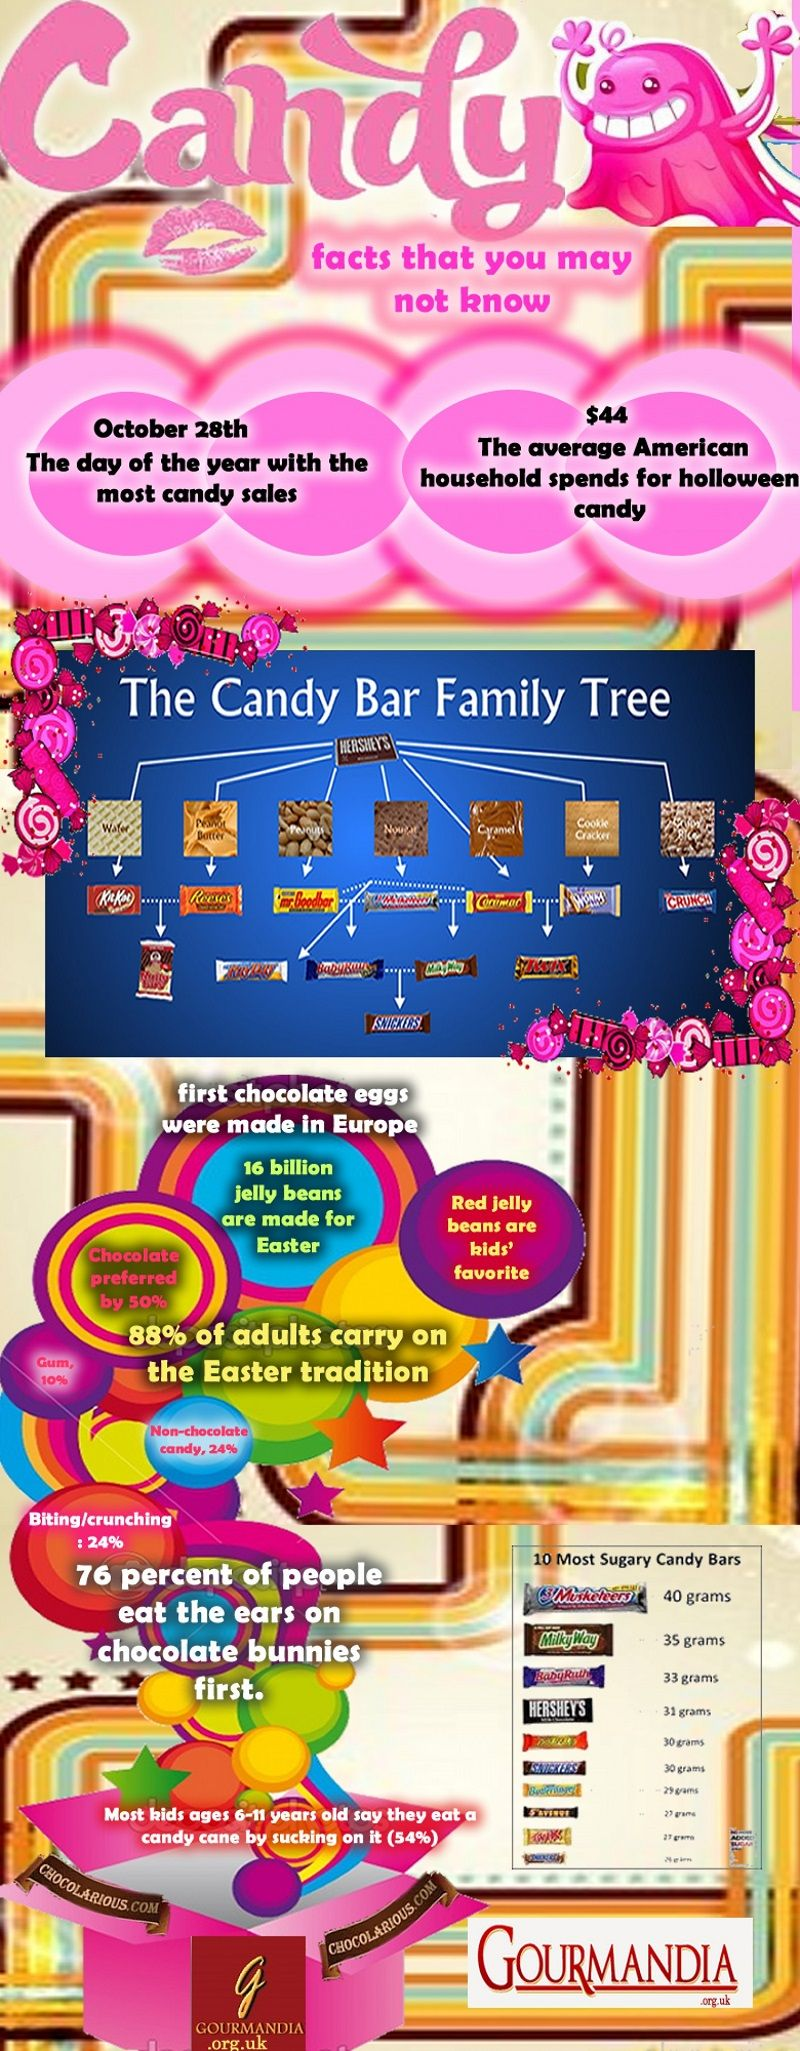 375 creative candy store names video infographic